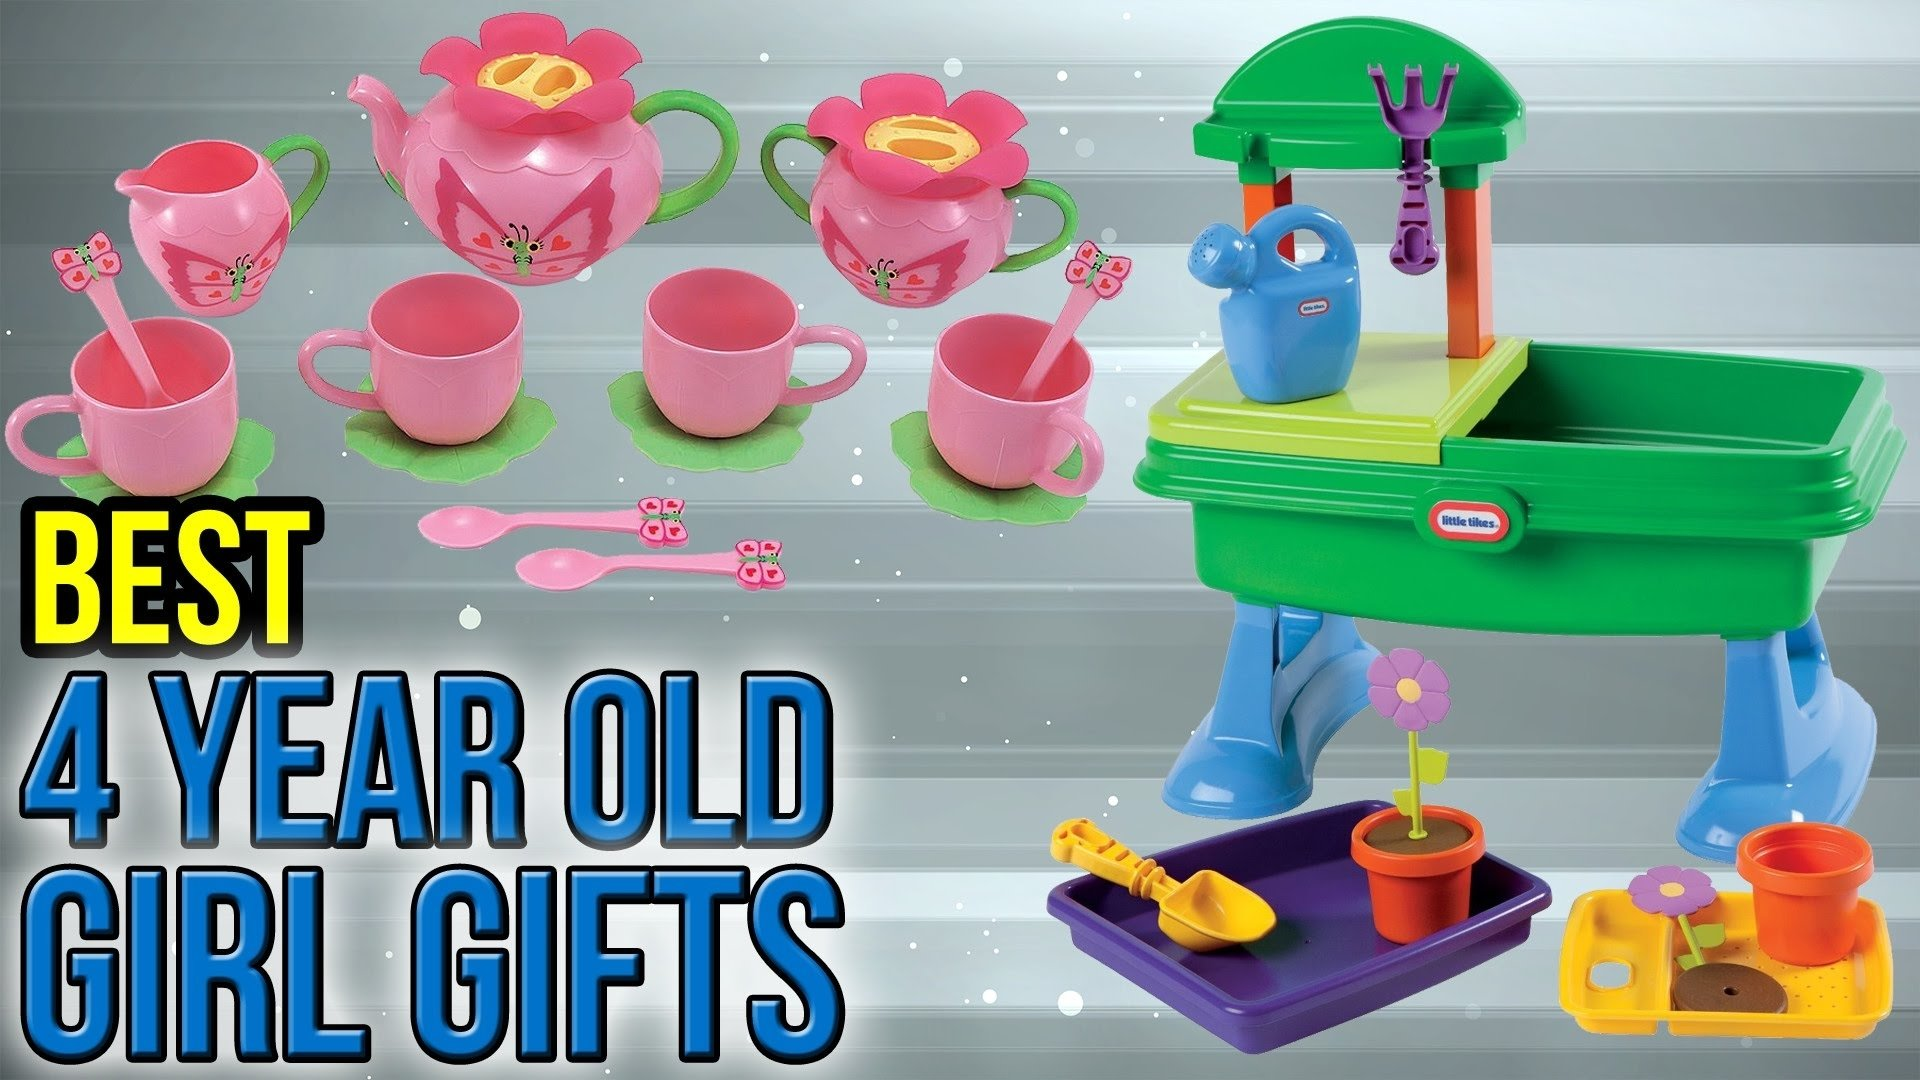 10 Famous Gift Ideas For 4 Yr Old Girl 10 best 4 year old girl gifts 2017 youtube 2020